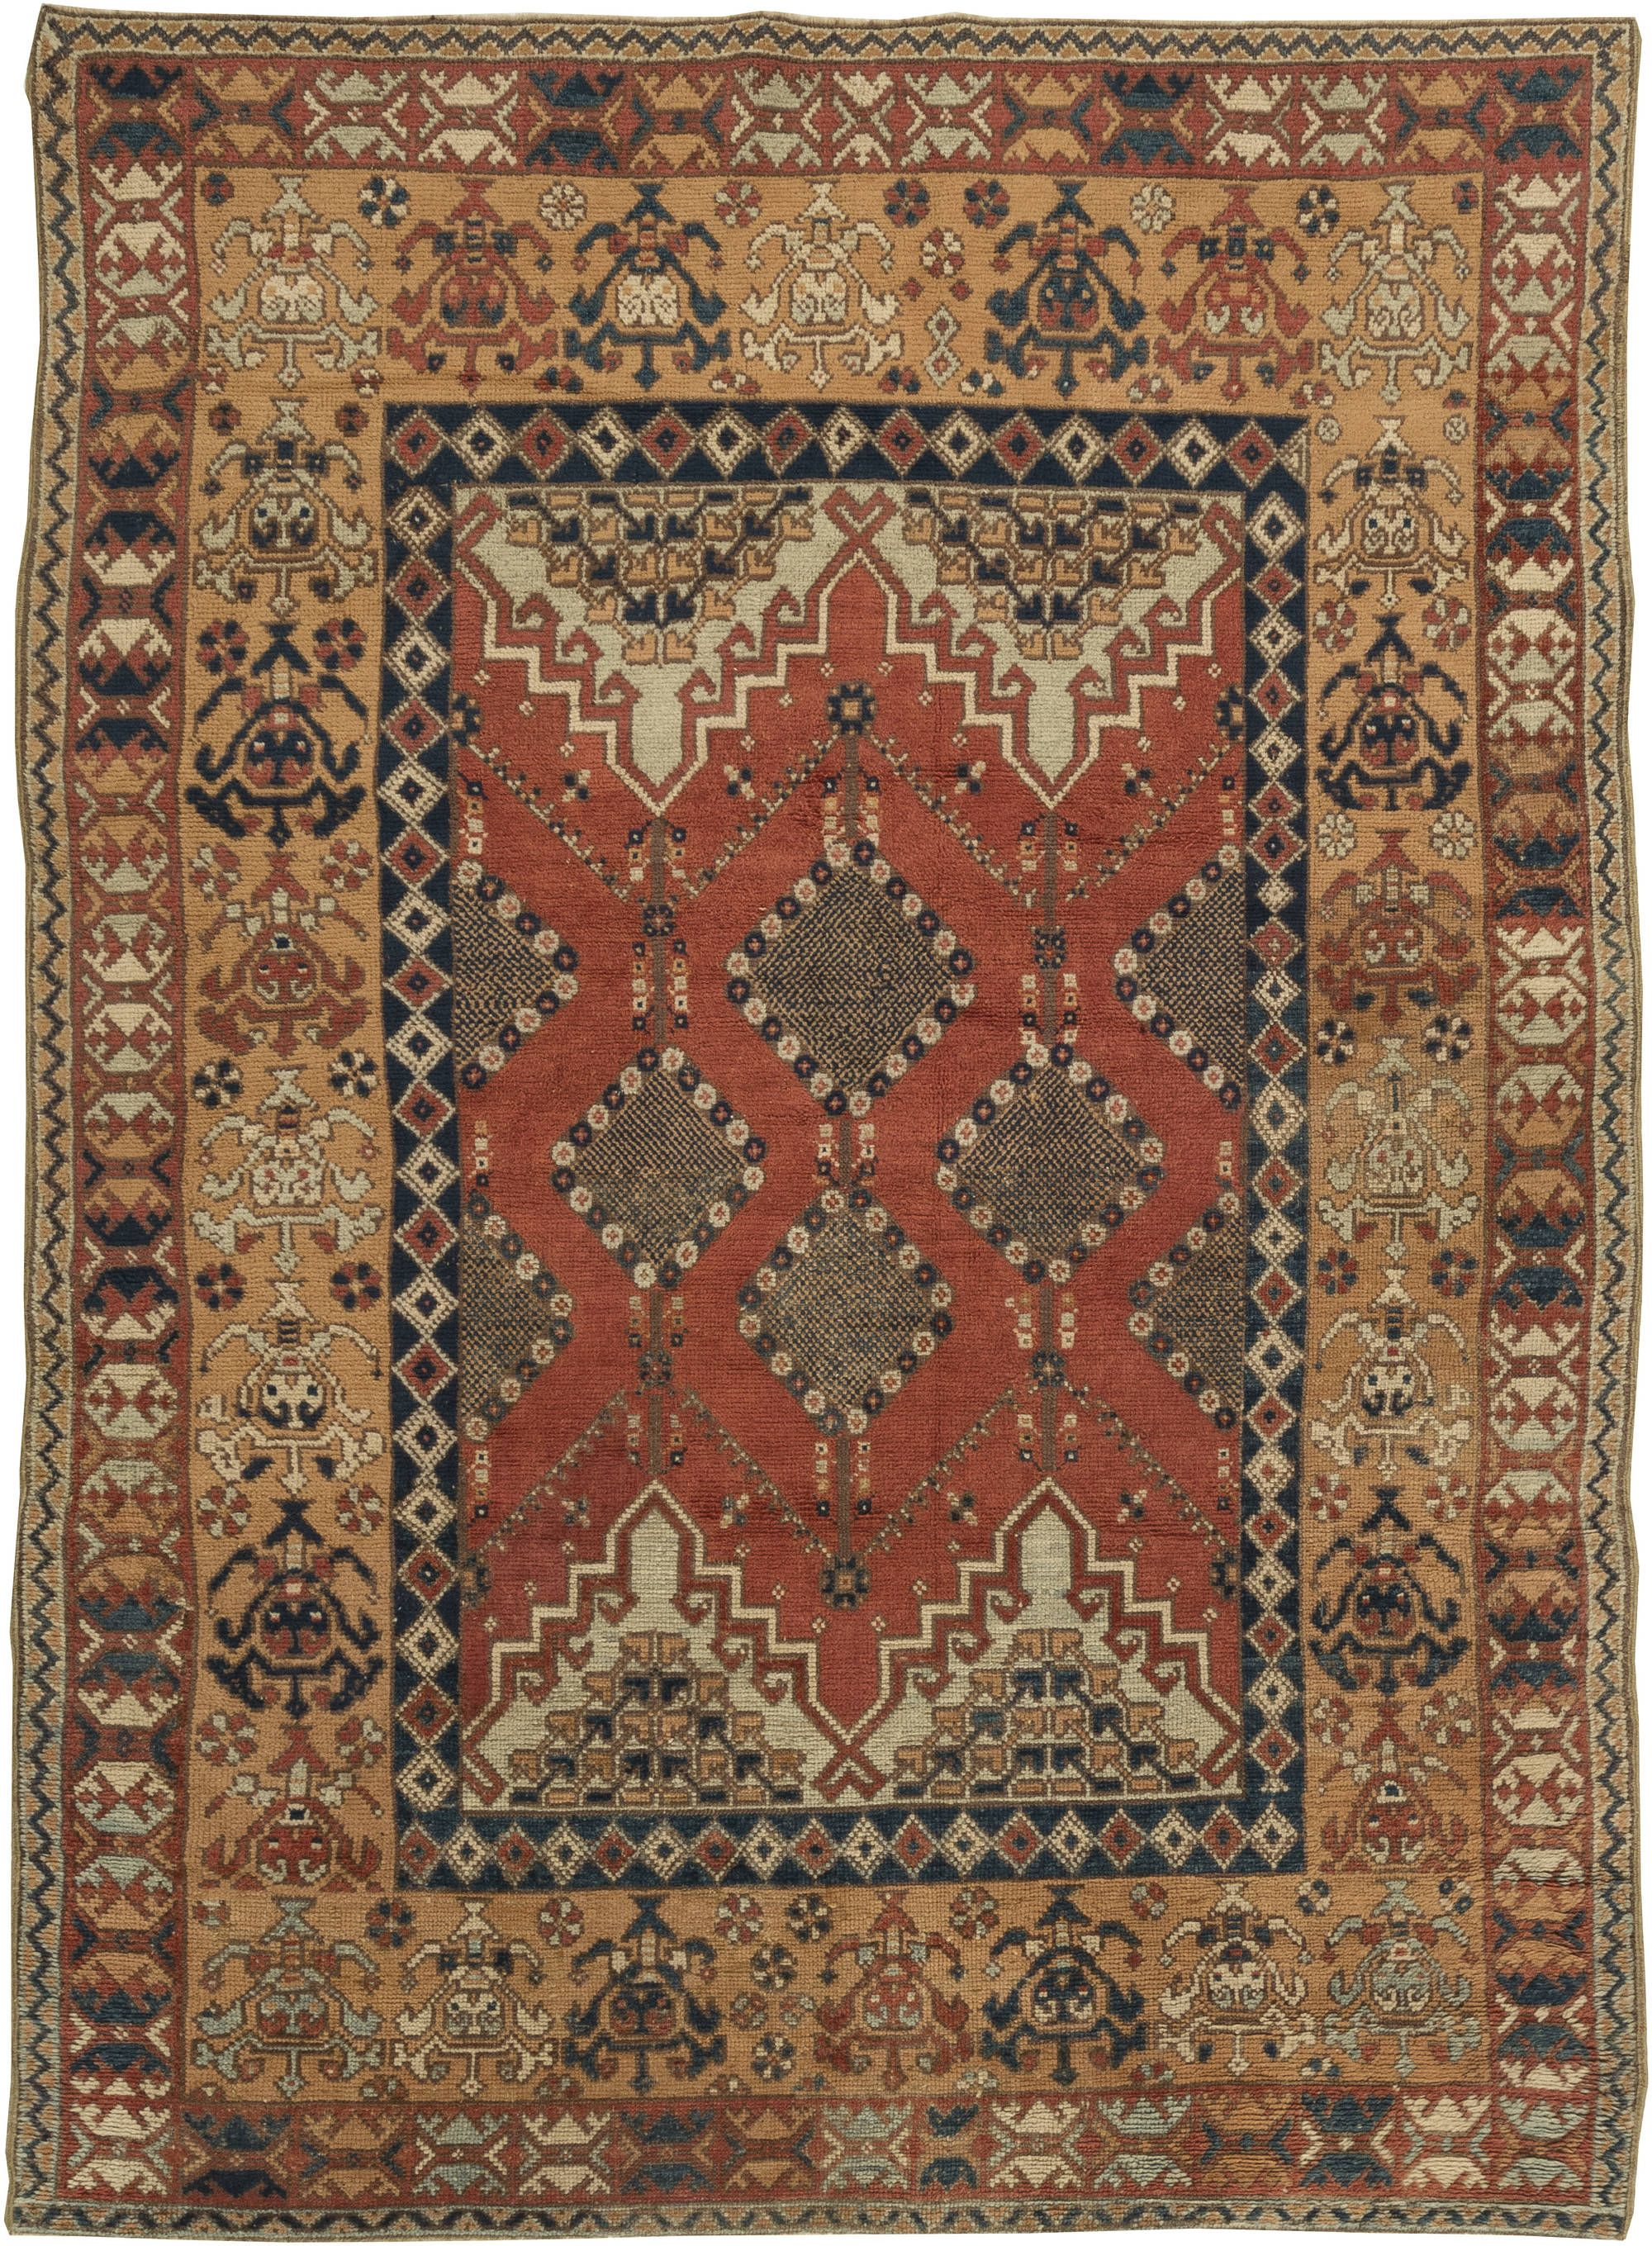 cheap x affordable antique full moroccan size shifting for rugs style target carpet etsy rug of sand and throw lovely uk bohemian berber